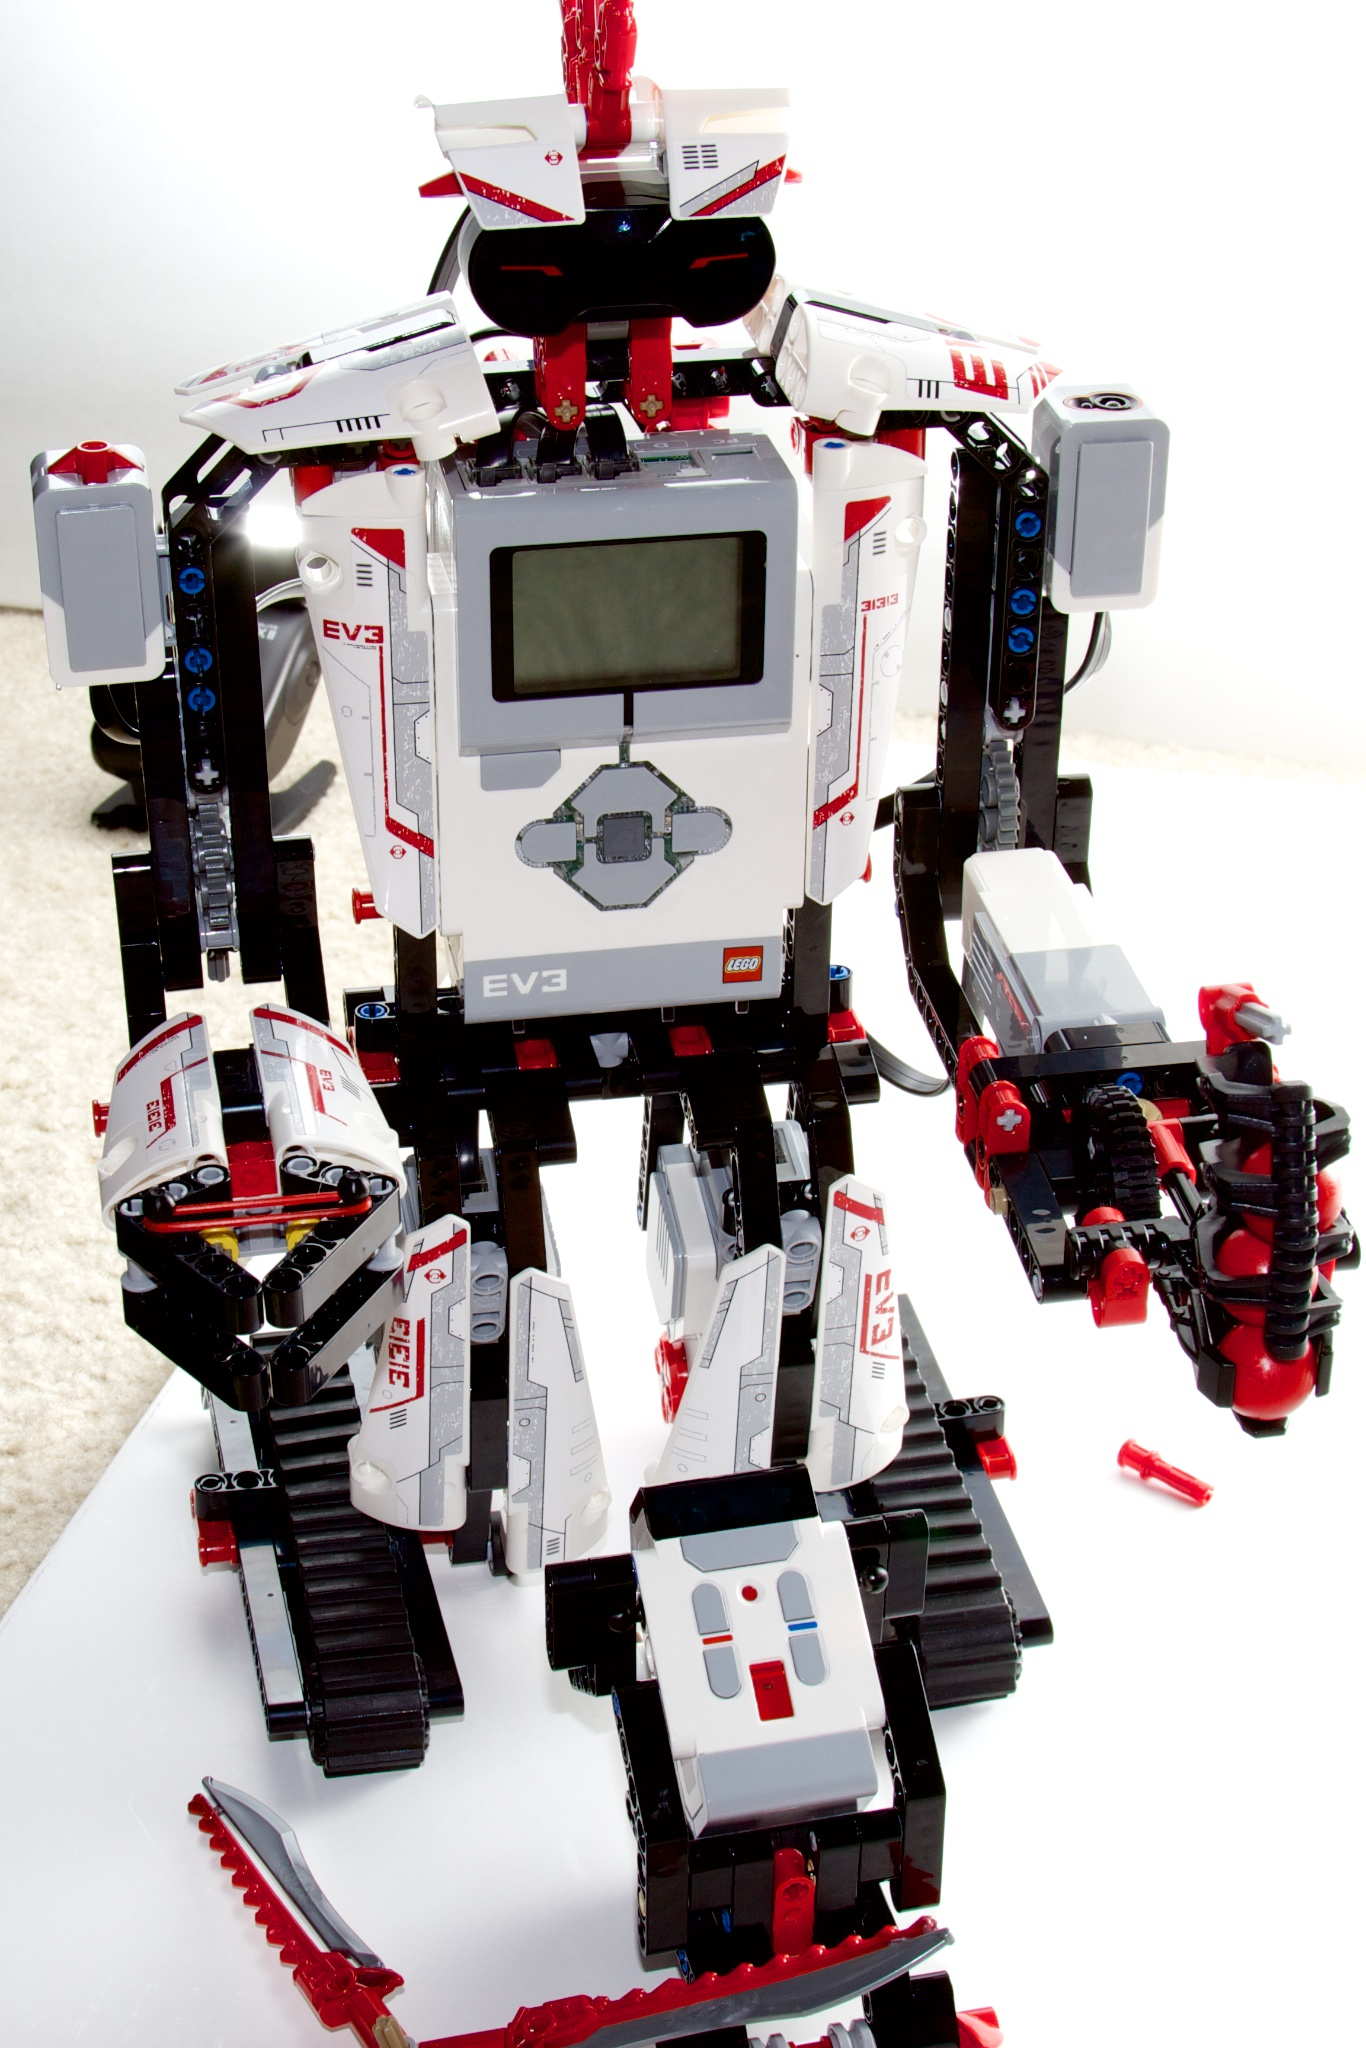 lego ev3 cyborg arm instructions